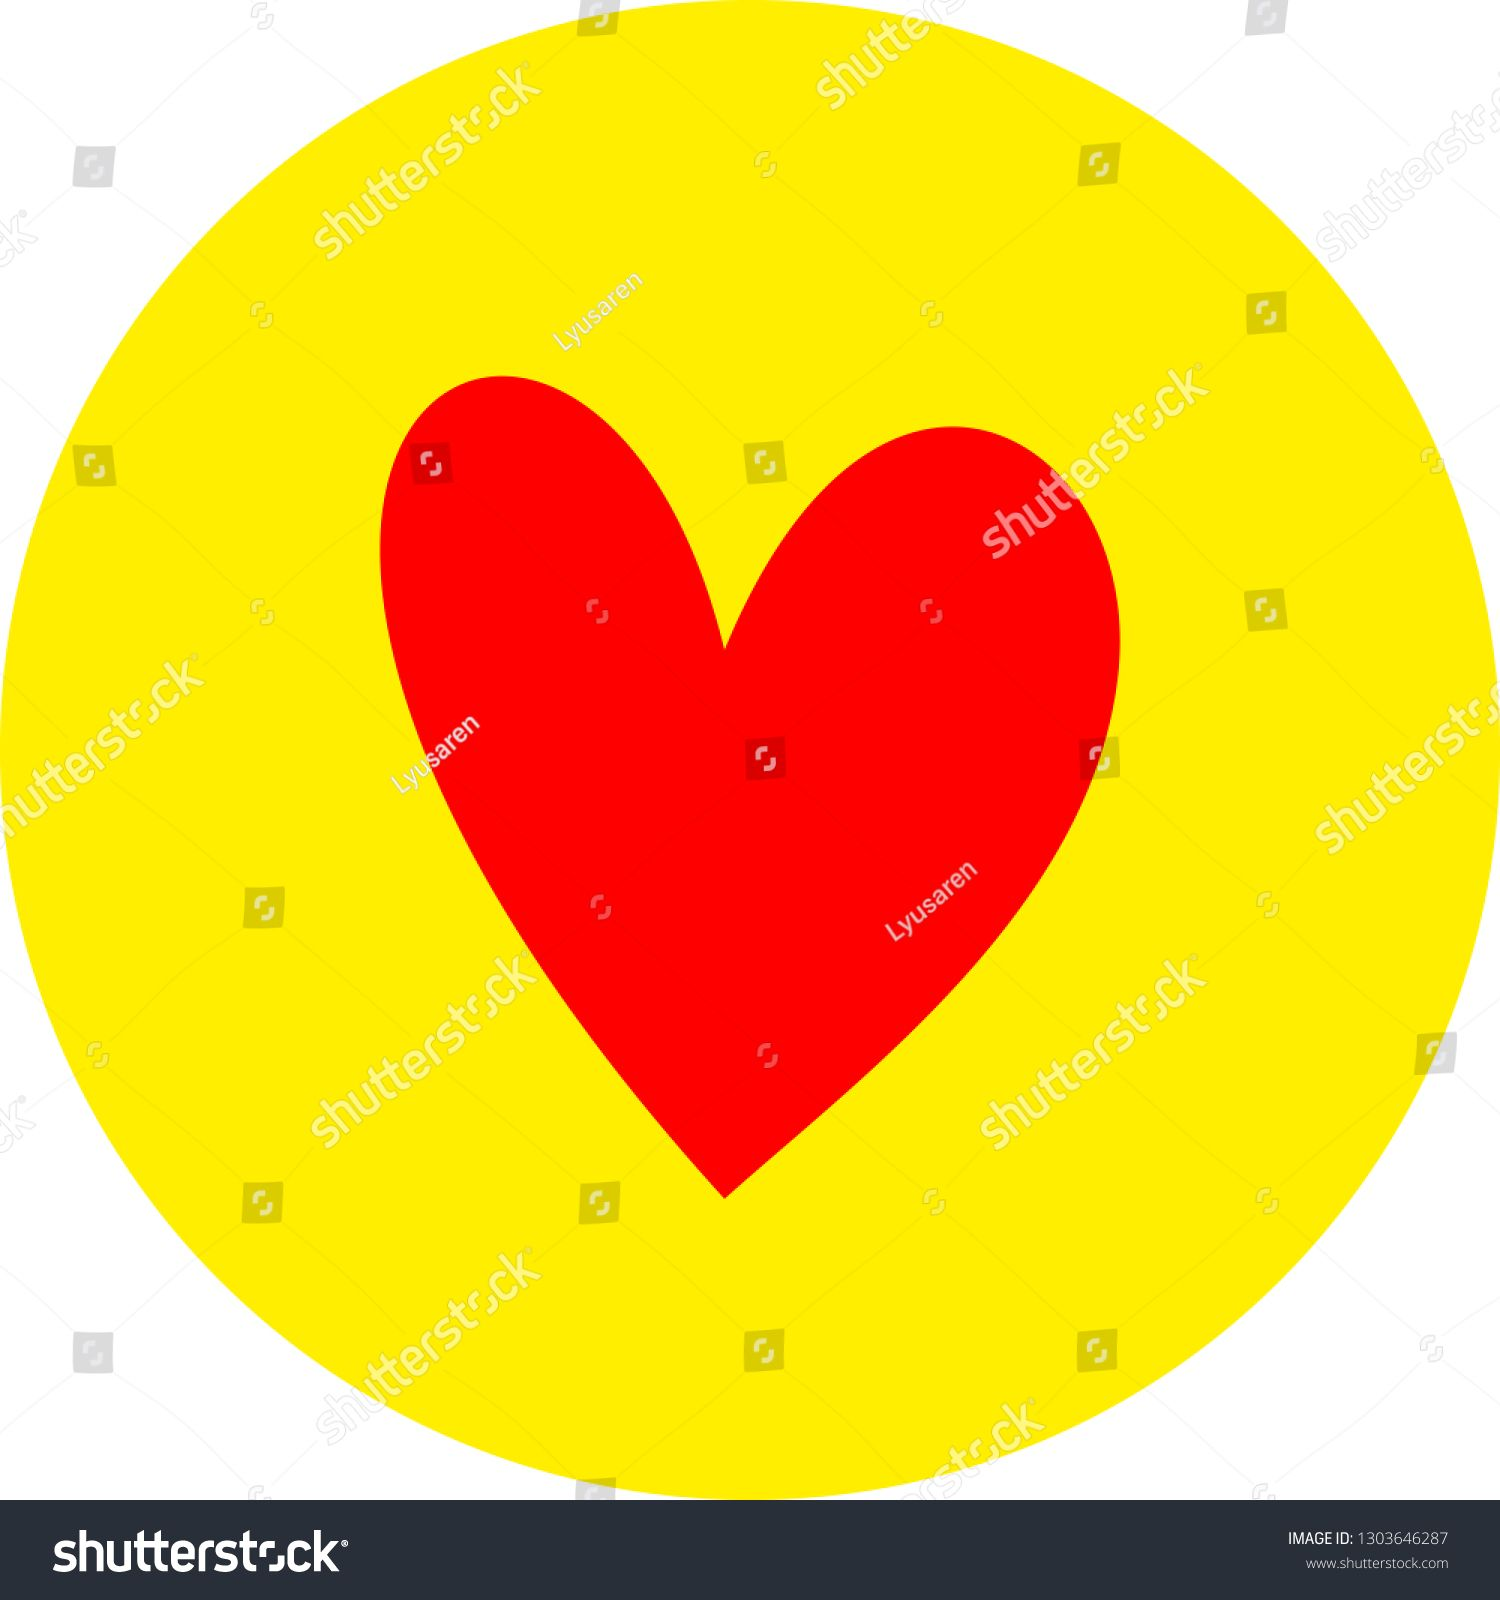 Heart Shape Flat Color Icon In Round Outline Romantic Love Symbol Yellow Circle Button With A Red Heart V Love Symbols Heart Shapes Brochure Template Layout